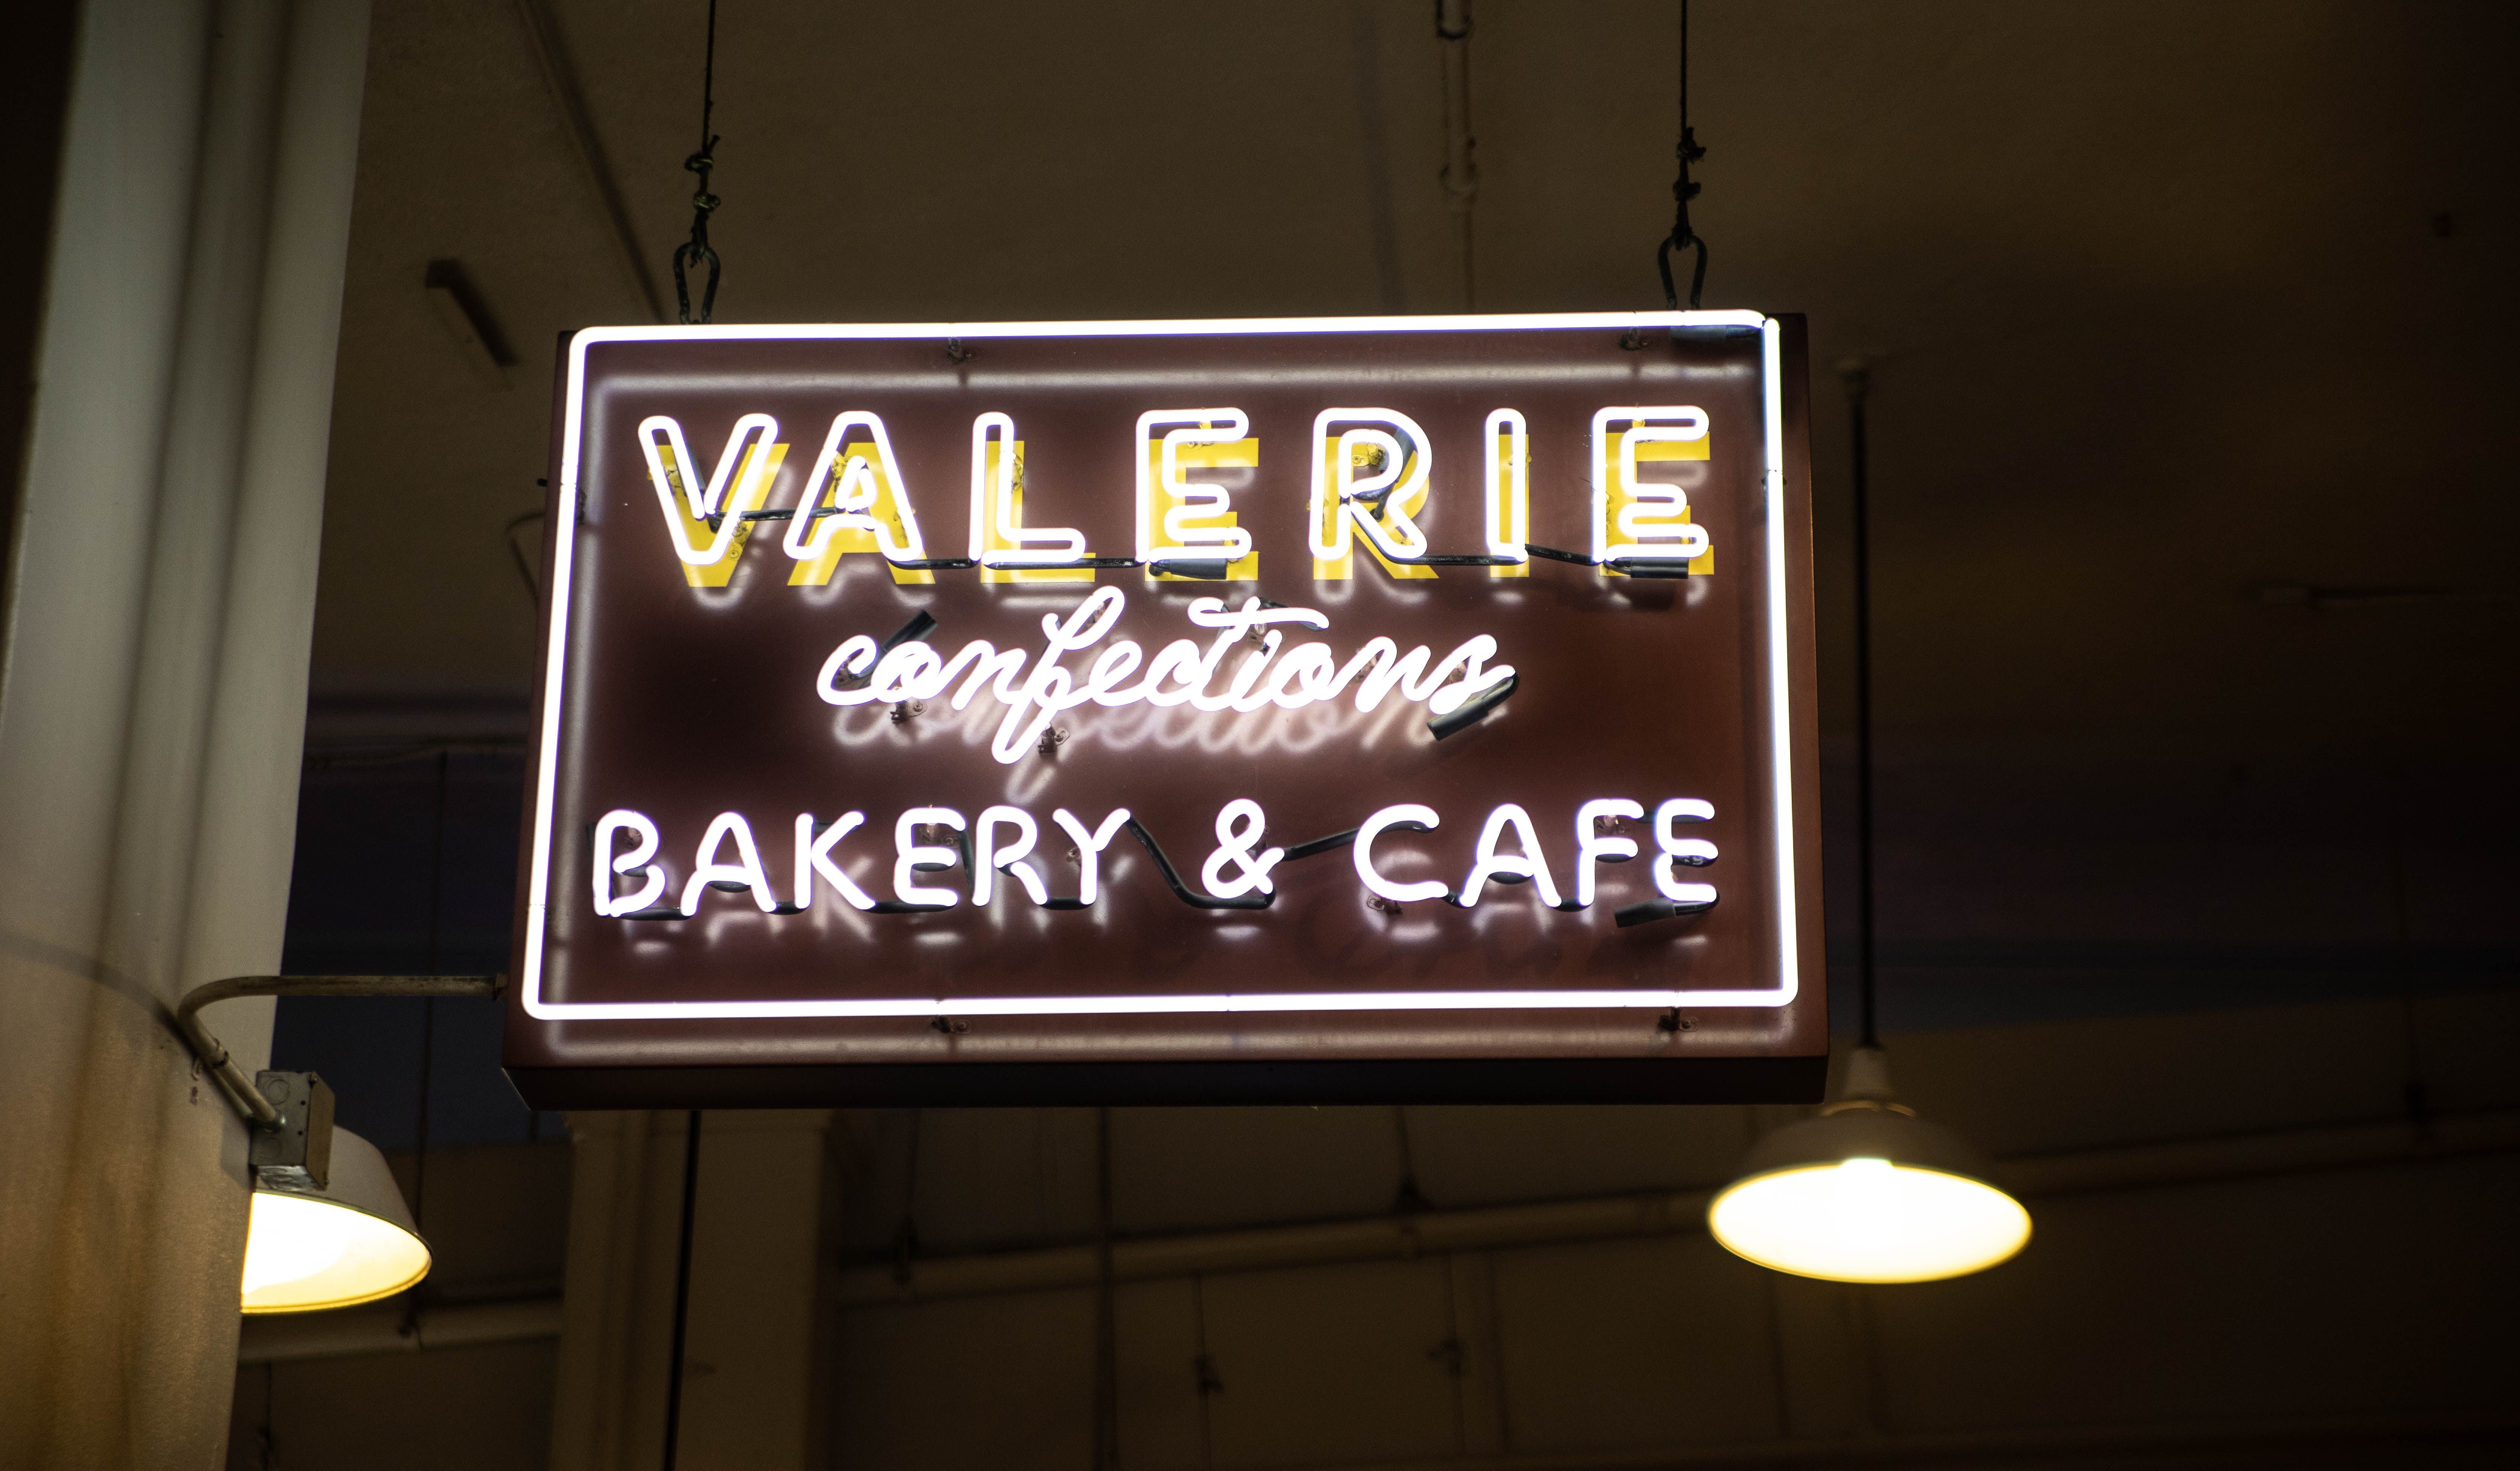 Valerie Confections Bakery Cafe Neon Signs At Grand Central Market In Los Angeles Central Market Bakery Cafe Organic Juice